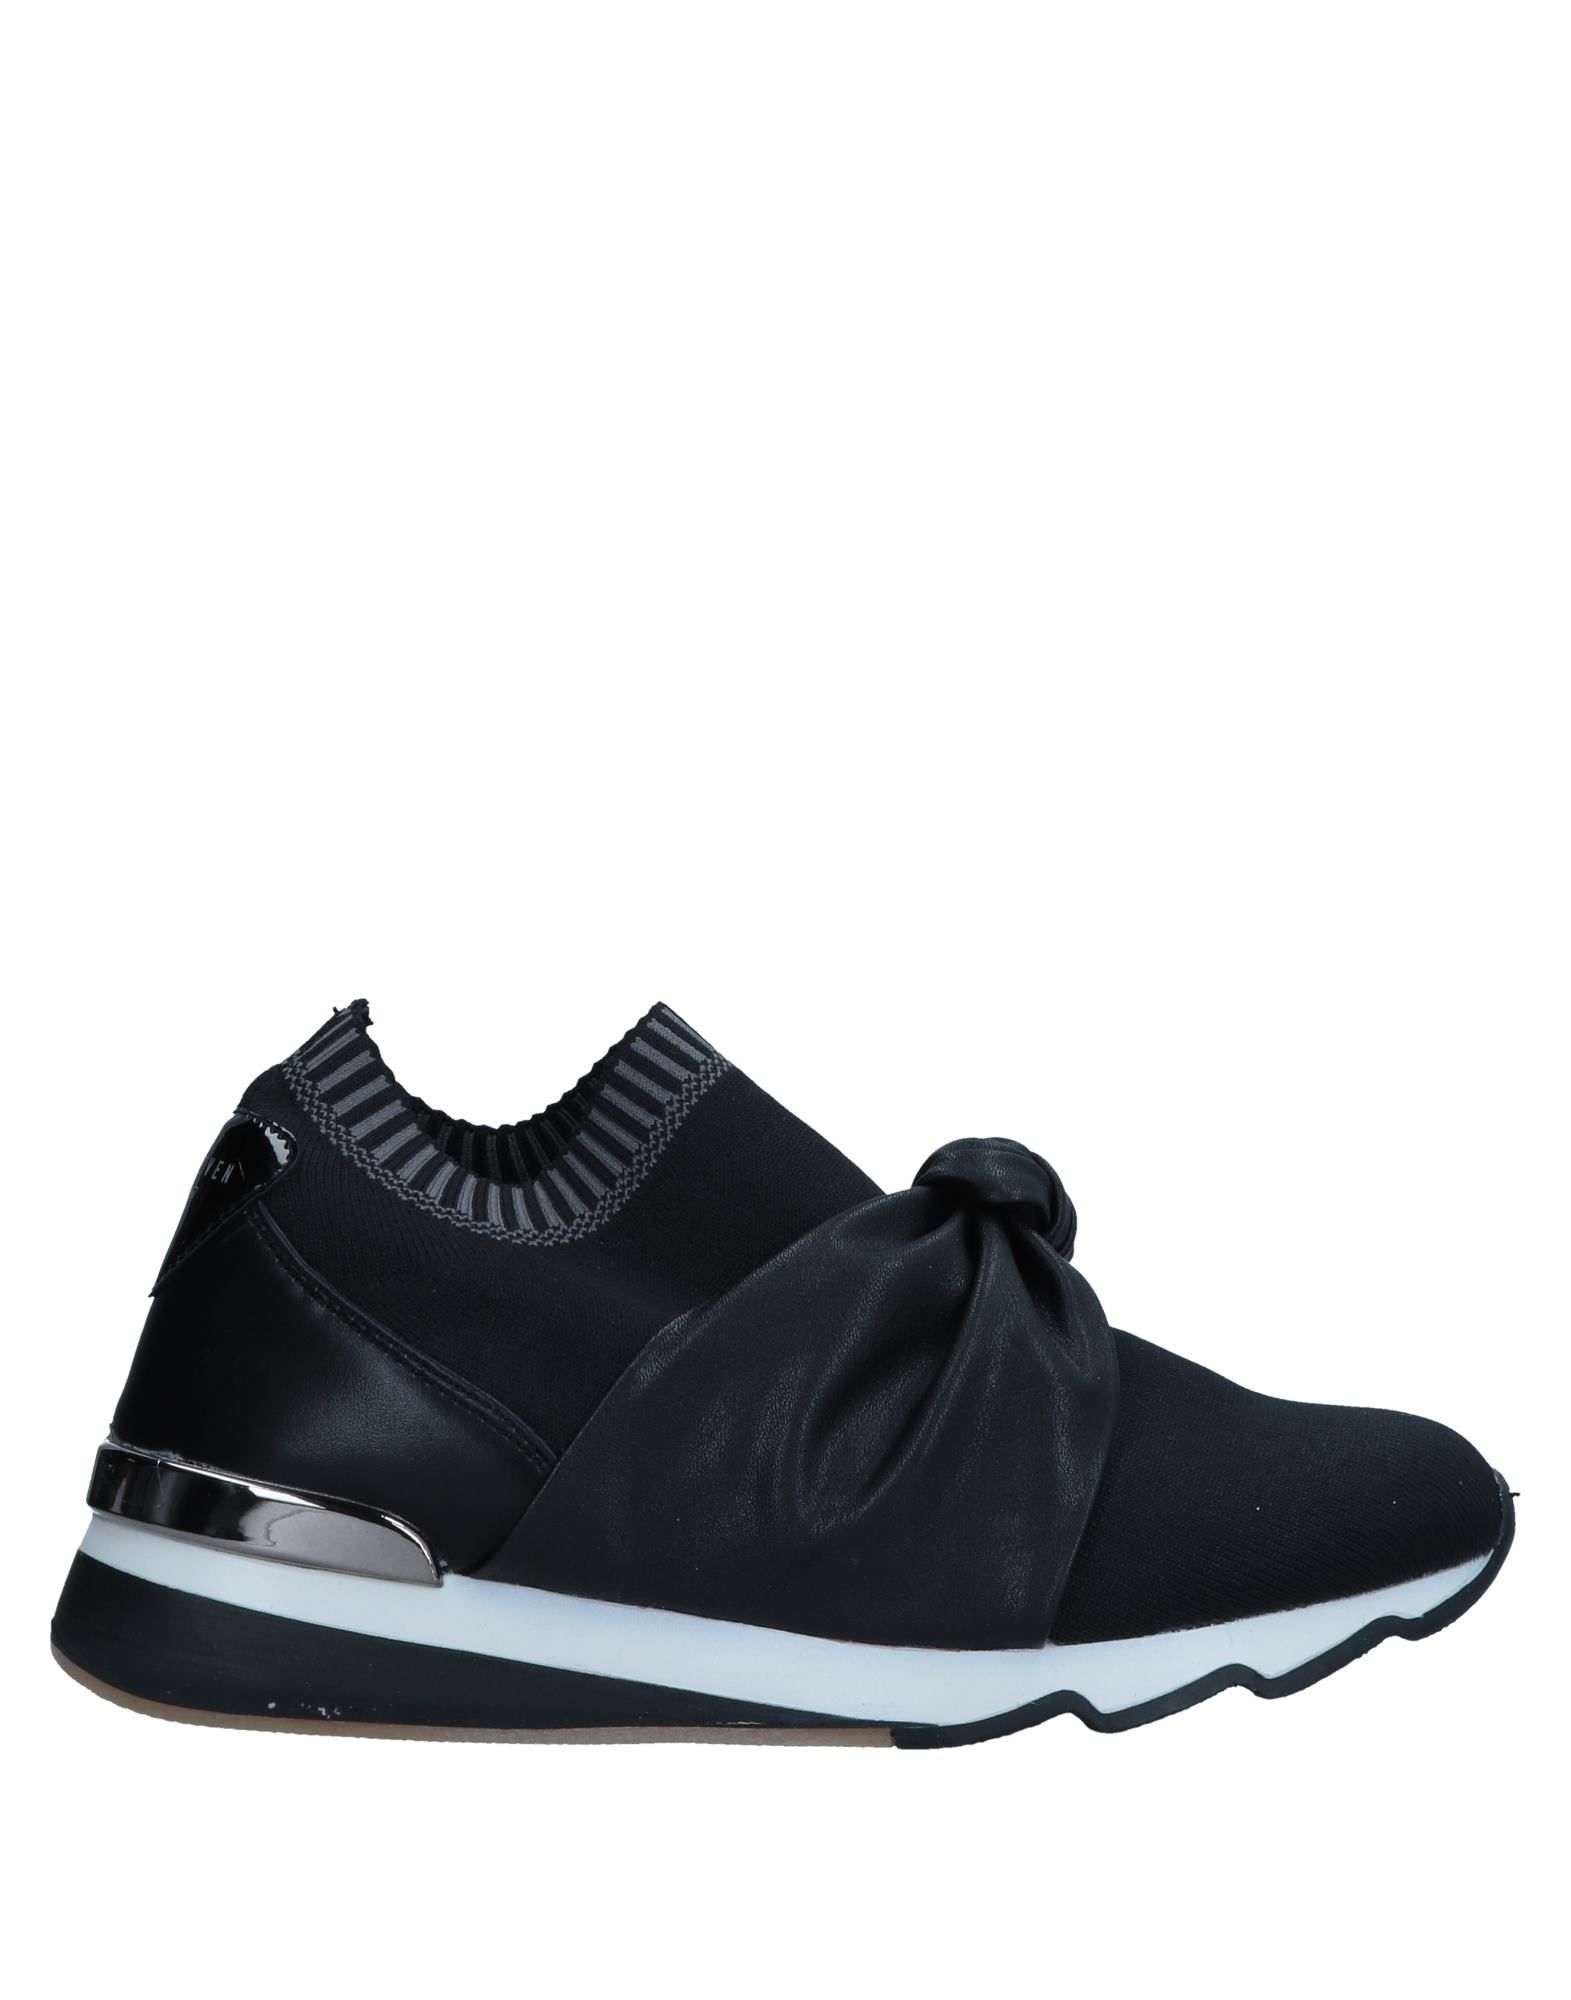 67 on Sixtyseven Sneakers - Women 67 Sixtyseven Sneakers online on 67  Australia - 11544687CG f06d6f